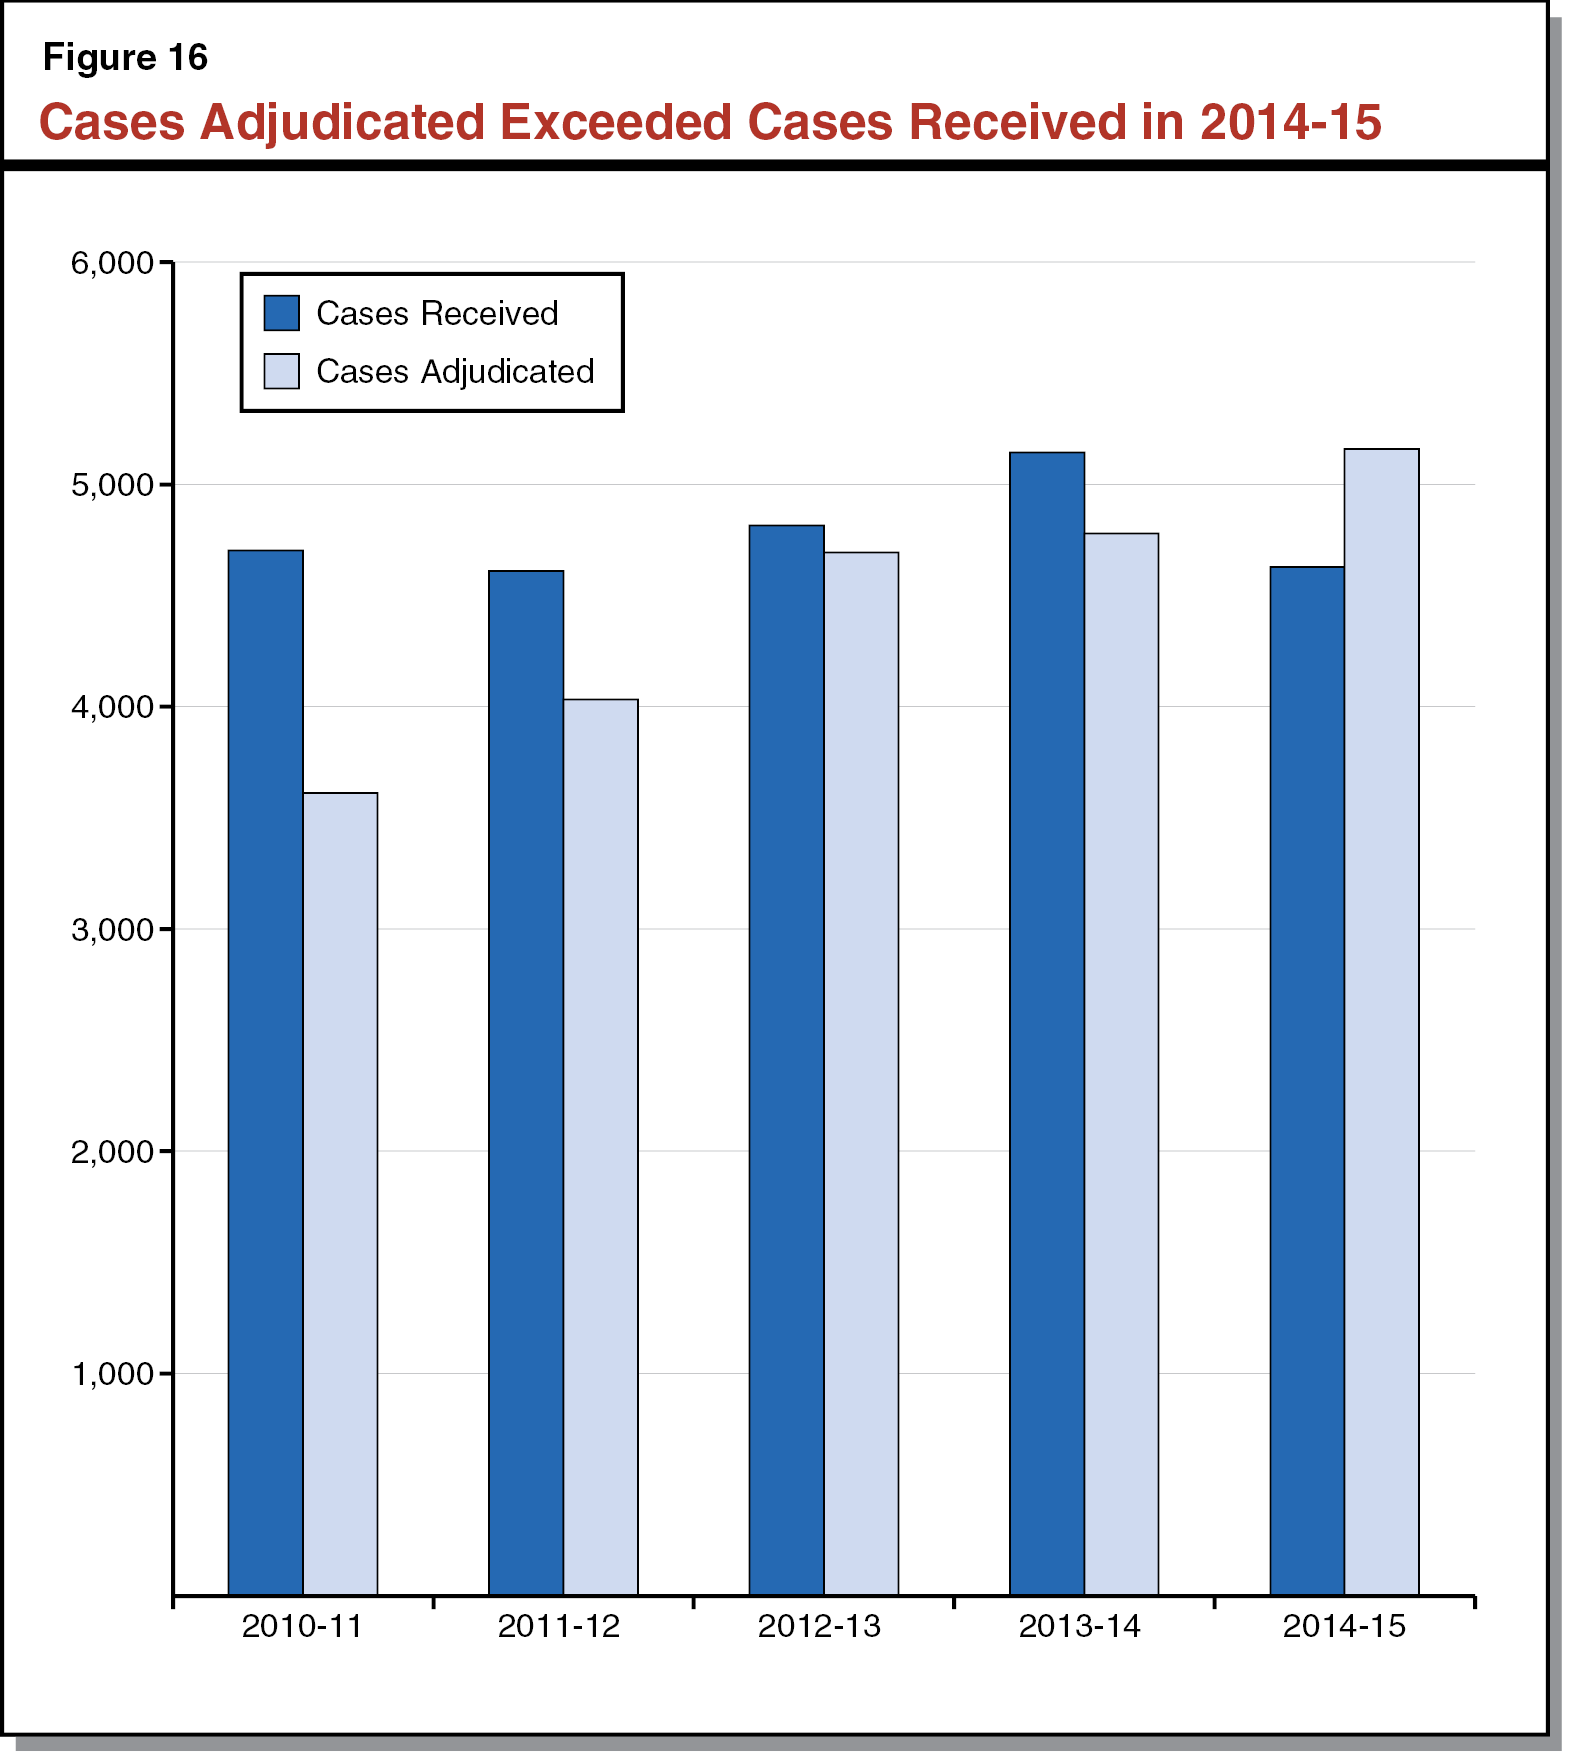 Figure 16 - Cases Adjudicated Exceeded Cases Received in 2014-15